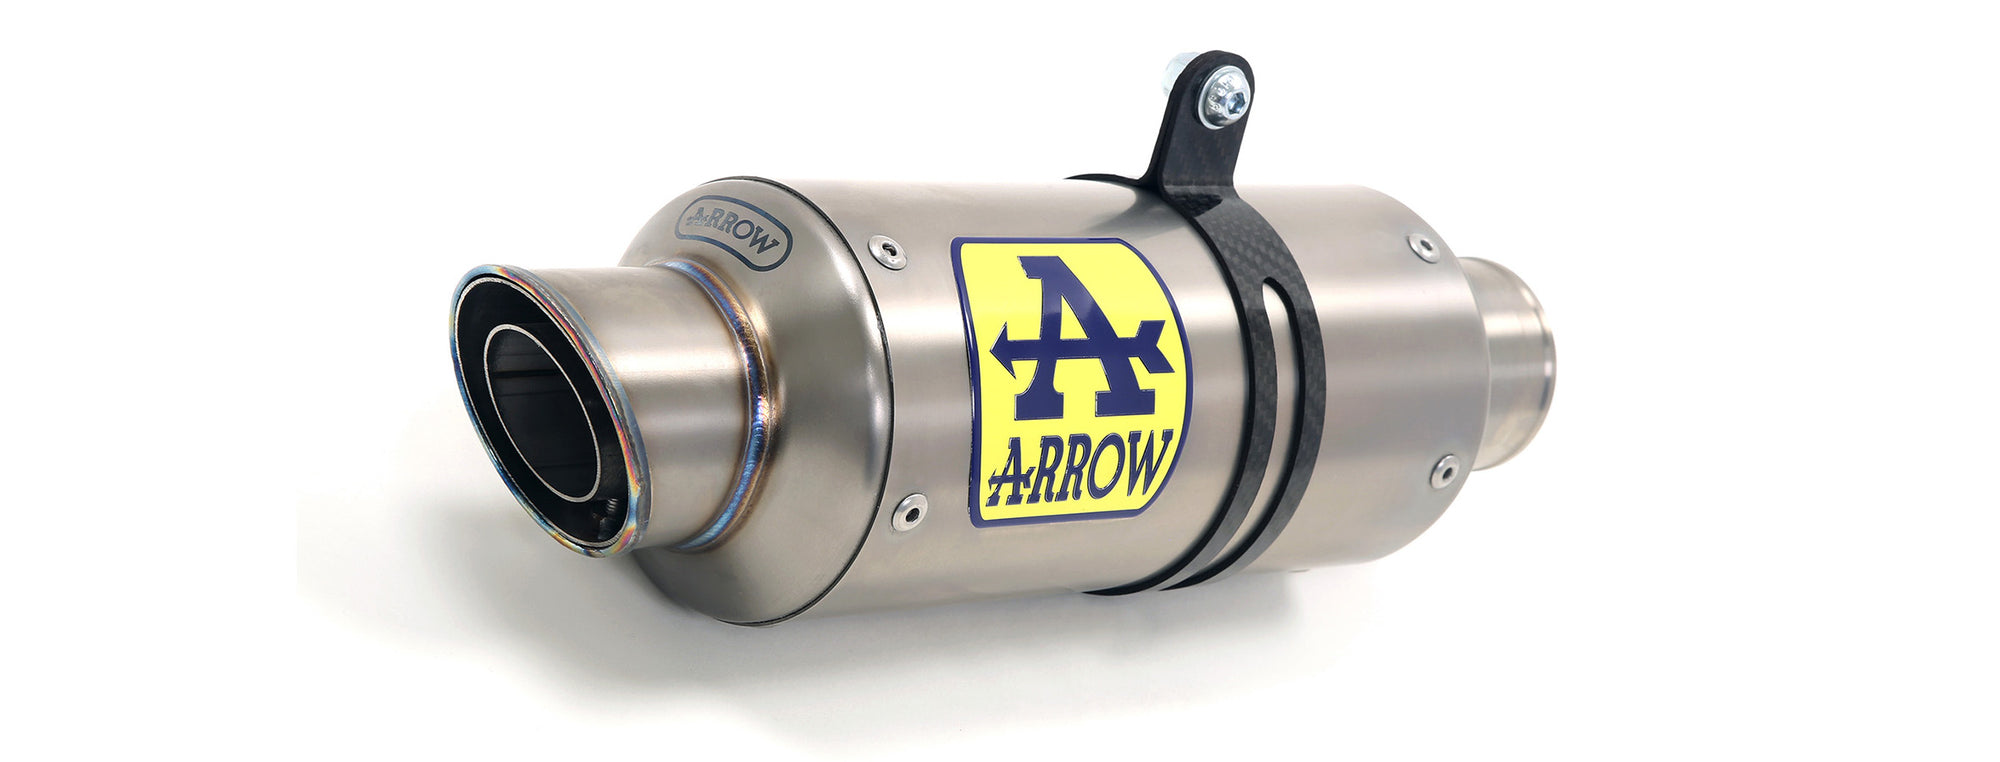 GP2 Exhaust - BMW, Exhaust Silencer, Arrow Exhausts - Race and Trackday Parts